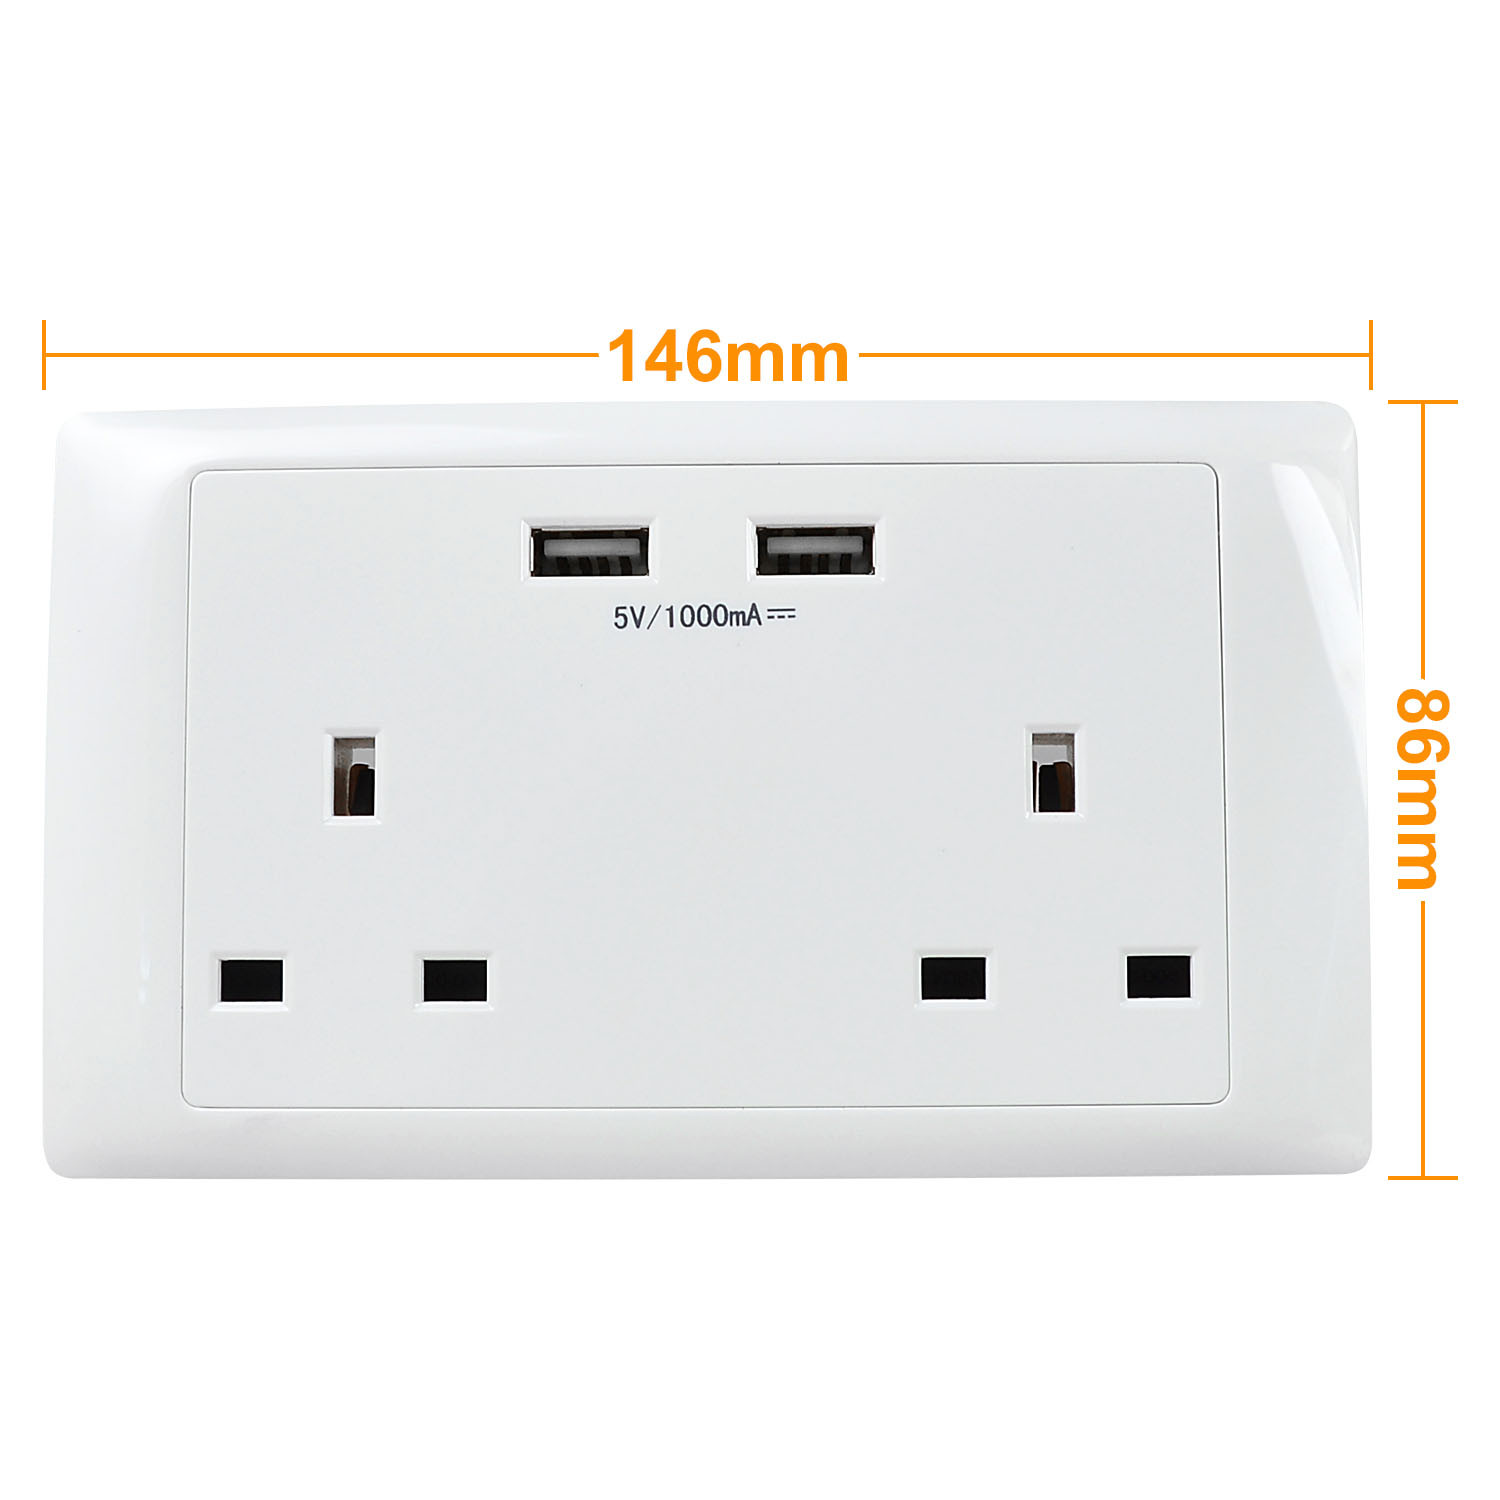 Usb Outlet For Home Cooper Wiring Devices 15 Amp Decorator Charging Electrical Uk Multifunction Double Sockets With 2 1000mah Outlets 13a